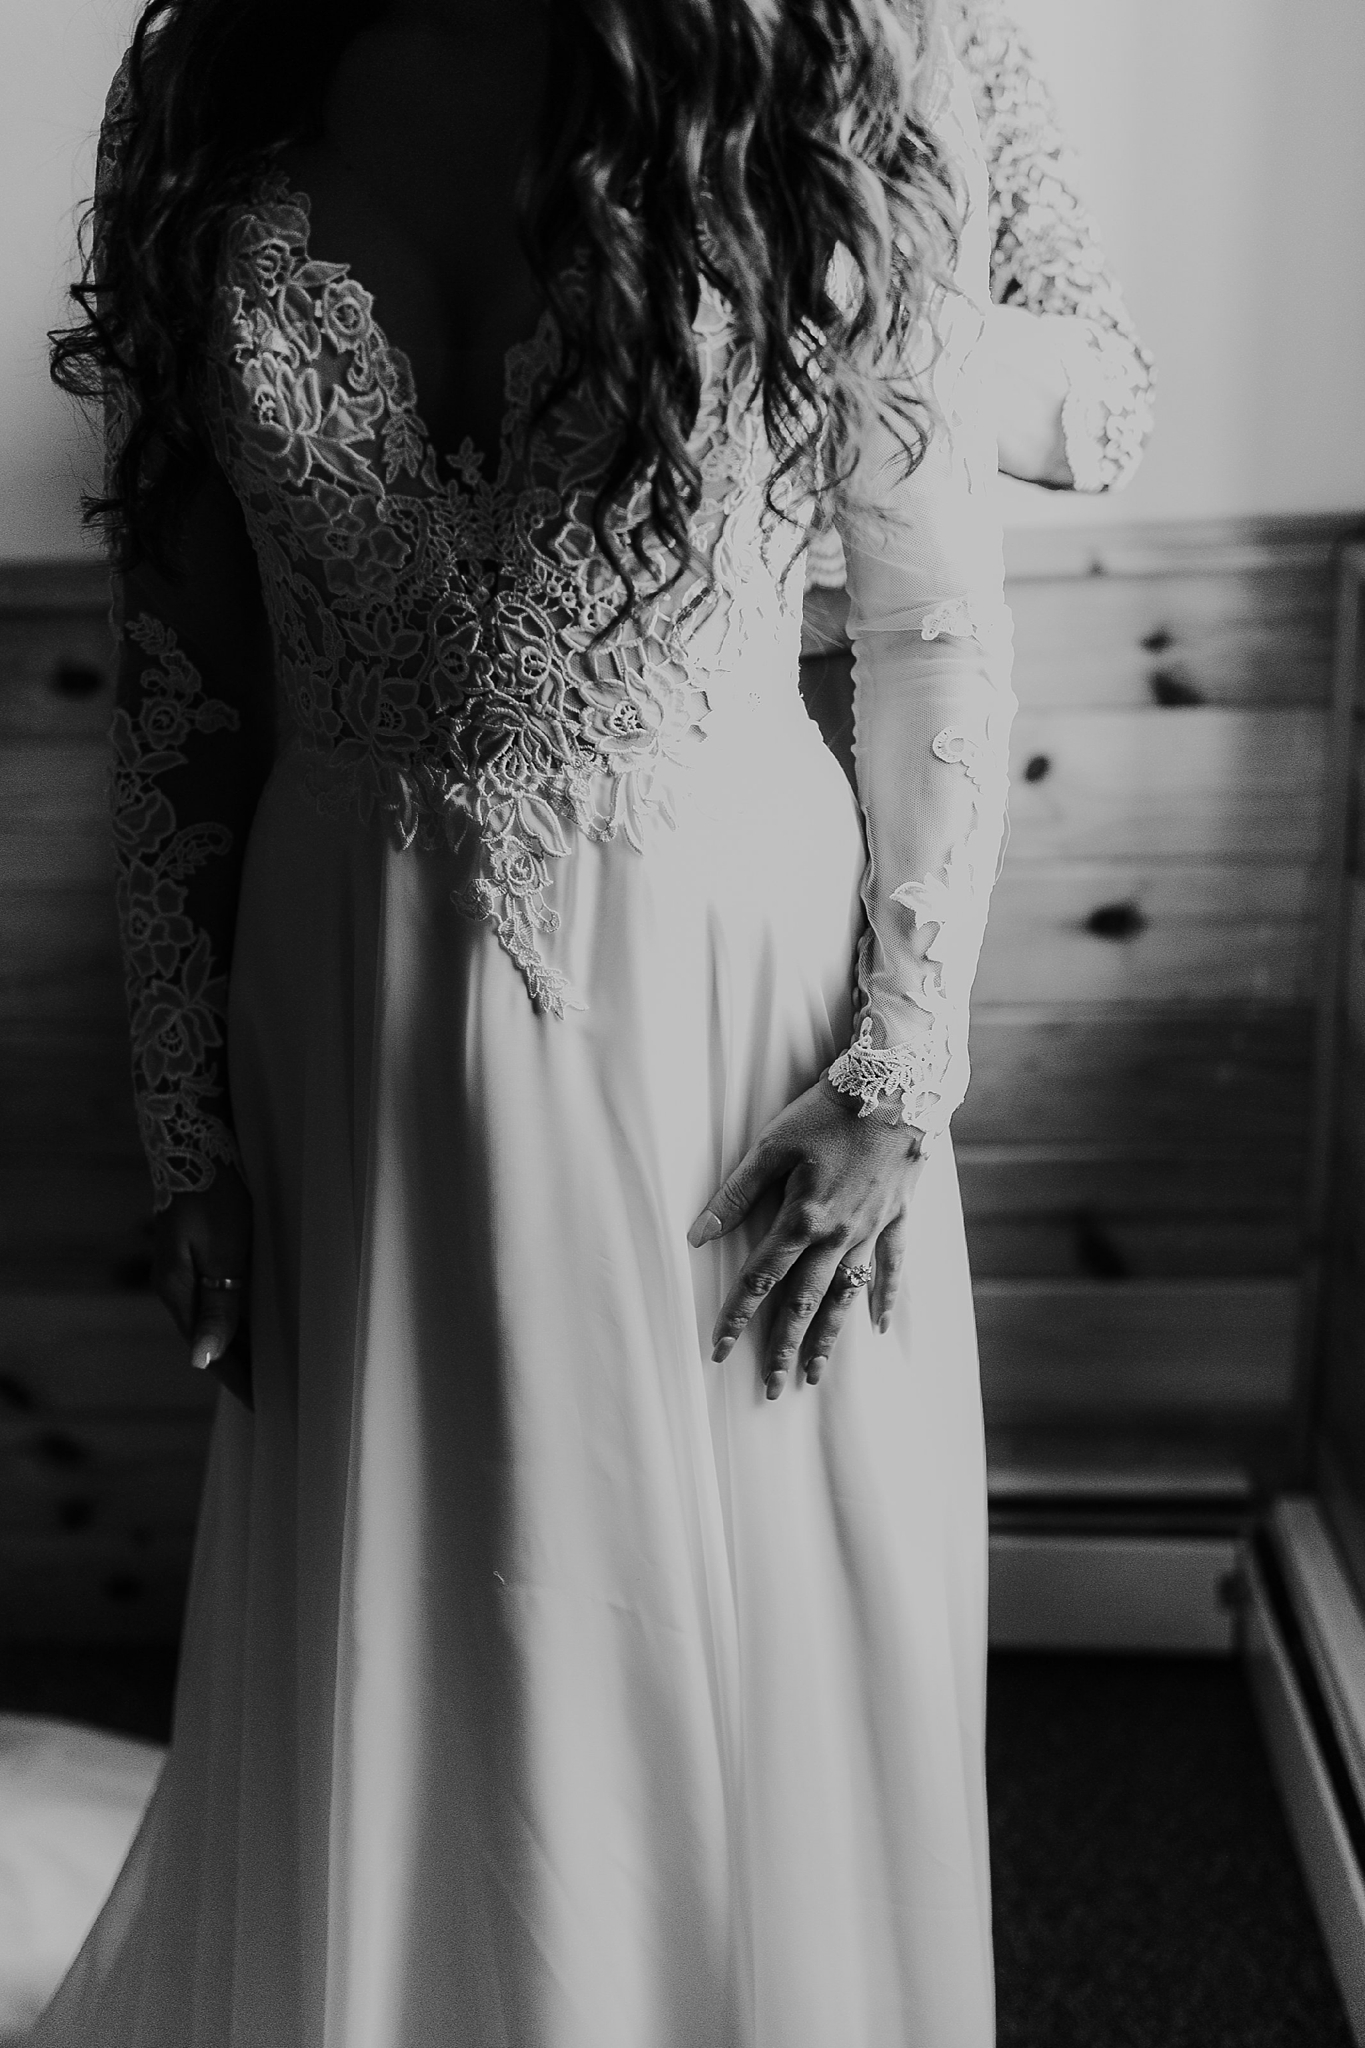 Alicia+lucia+photography+-+albuquerque+wedding+photographer+-+santa+fe+wedding+photography+-+new+mexico+wedding+photographer+-+new+mexico+wedding+-+wedding+gowns+-+bridal+gowns+-+a+line+wedding+gown_0009.jpg